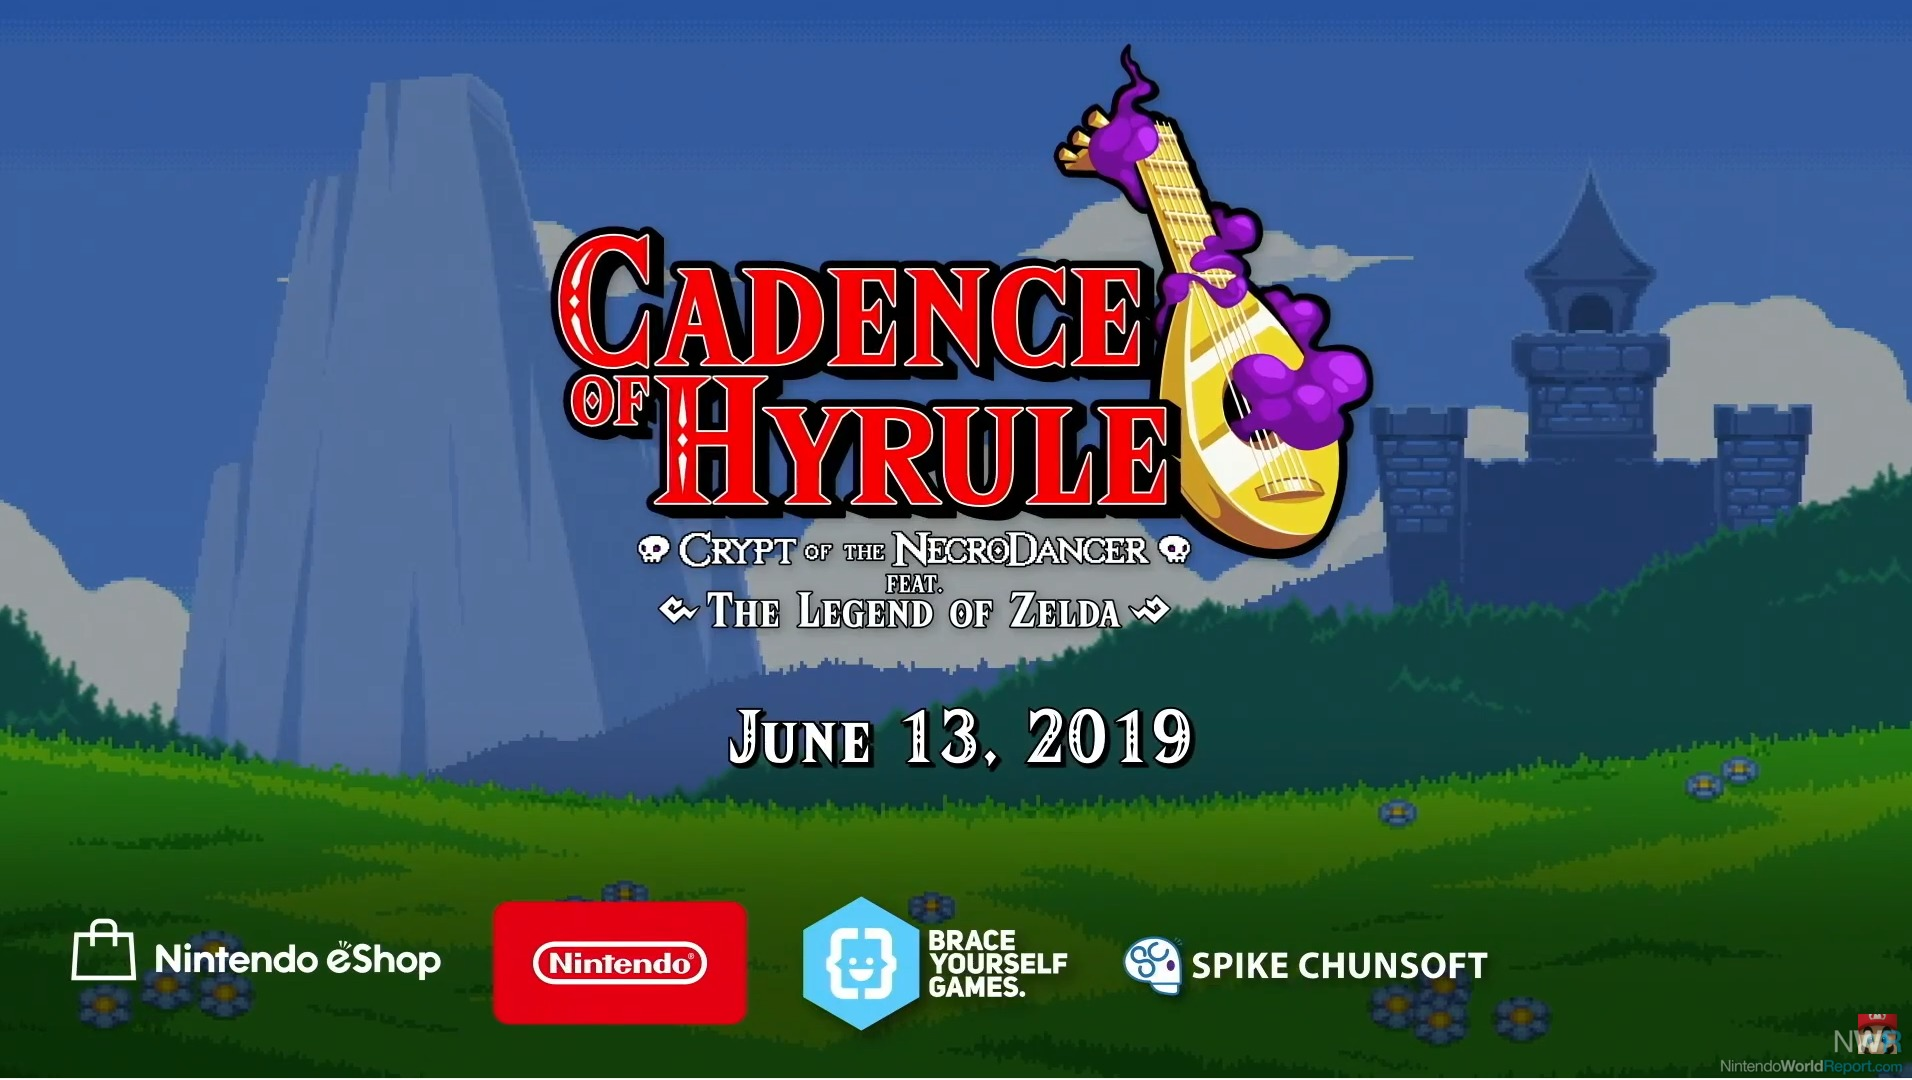 Cadence of Hyrule Launches on June 13 - News - Nintendo